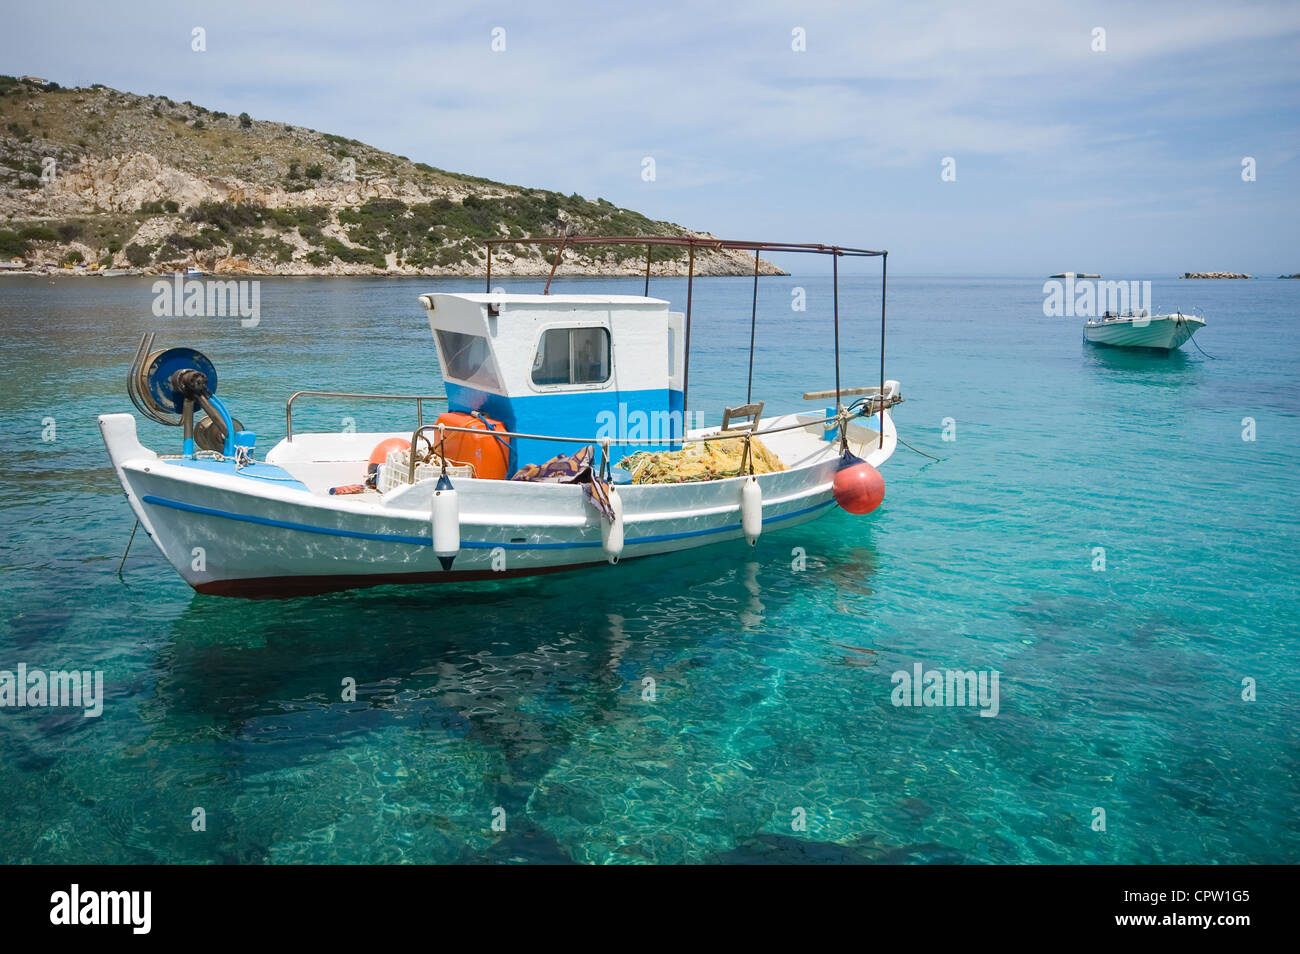 Fishing boat moored in the port, Zakynthos - Stock Image